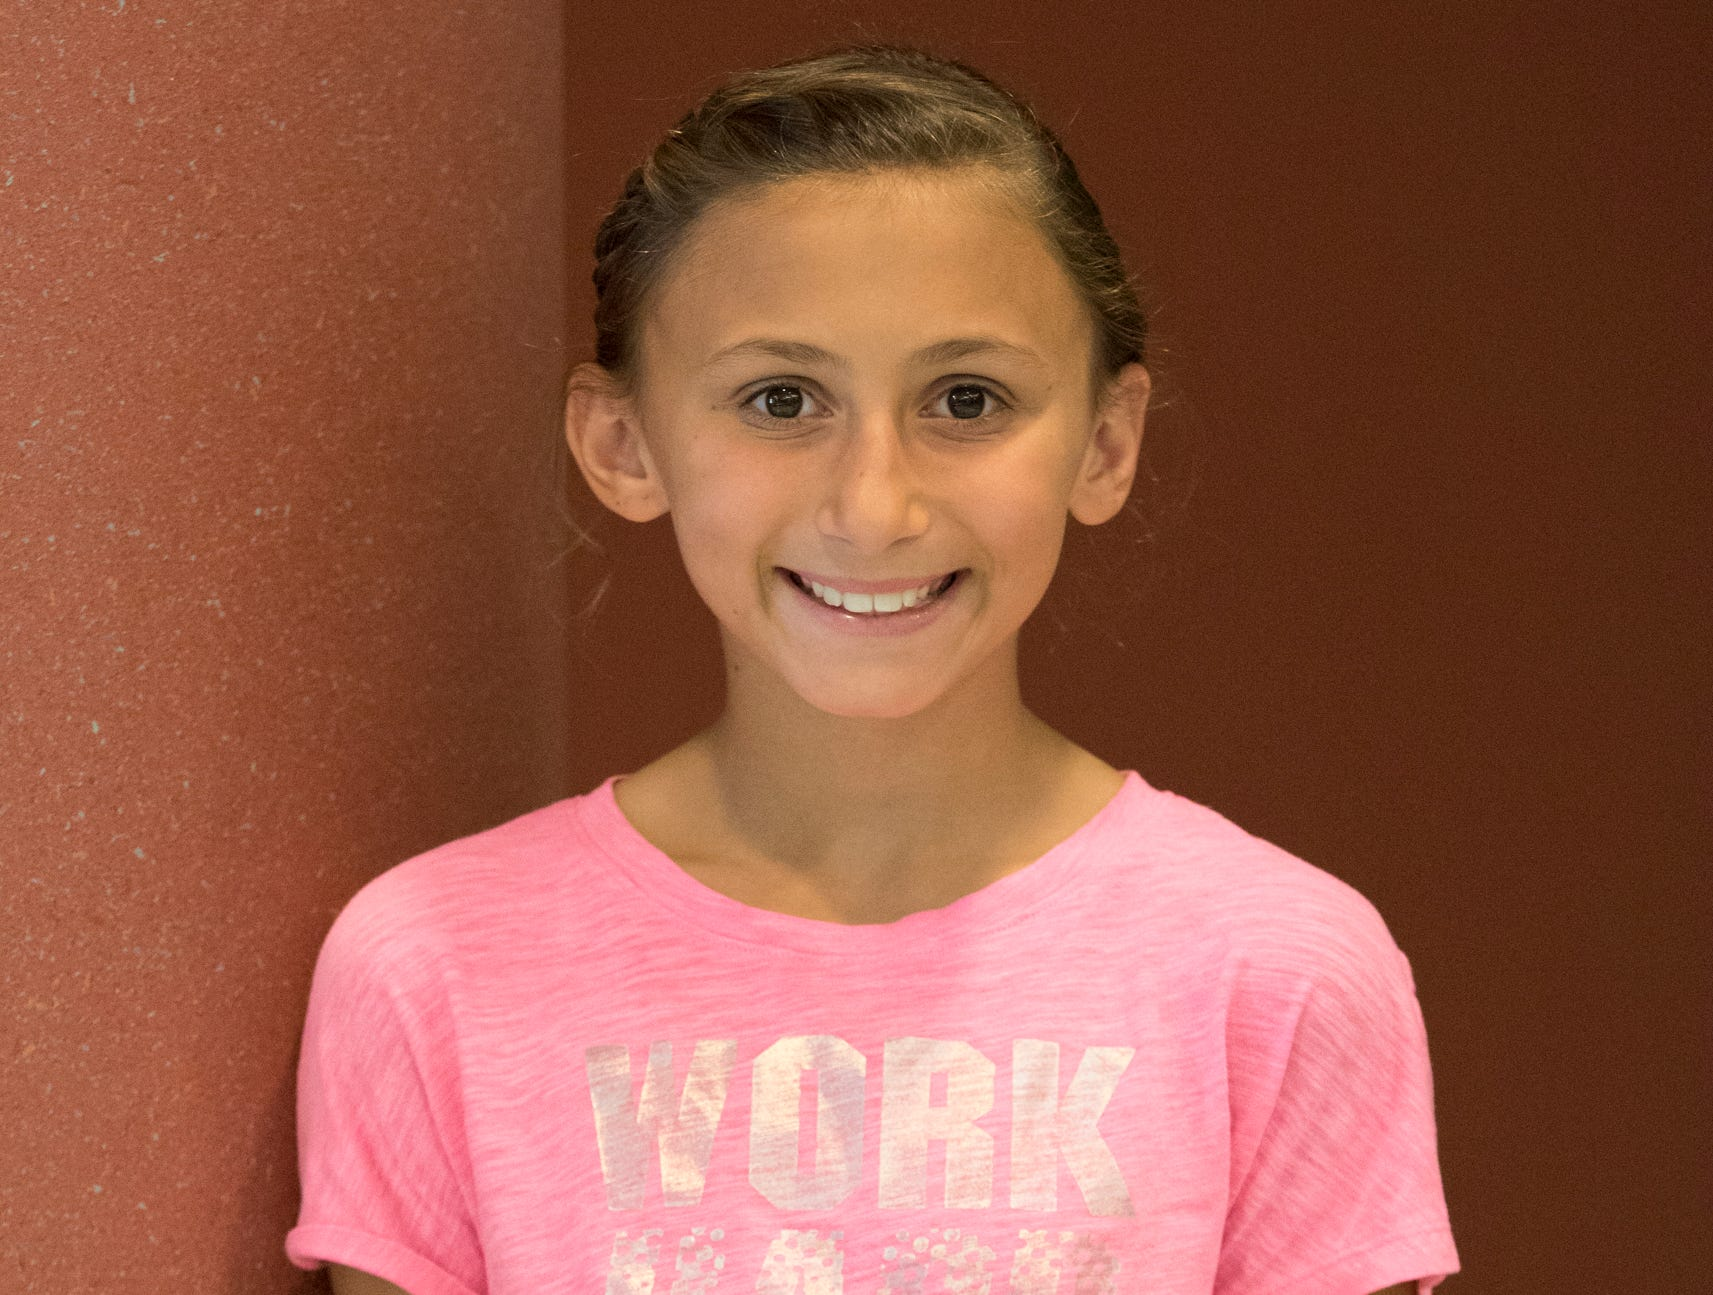 Allie Baker, 11, Mud Crew. Project: Clothes for Middle School